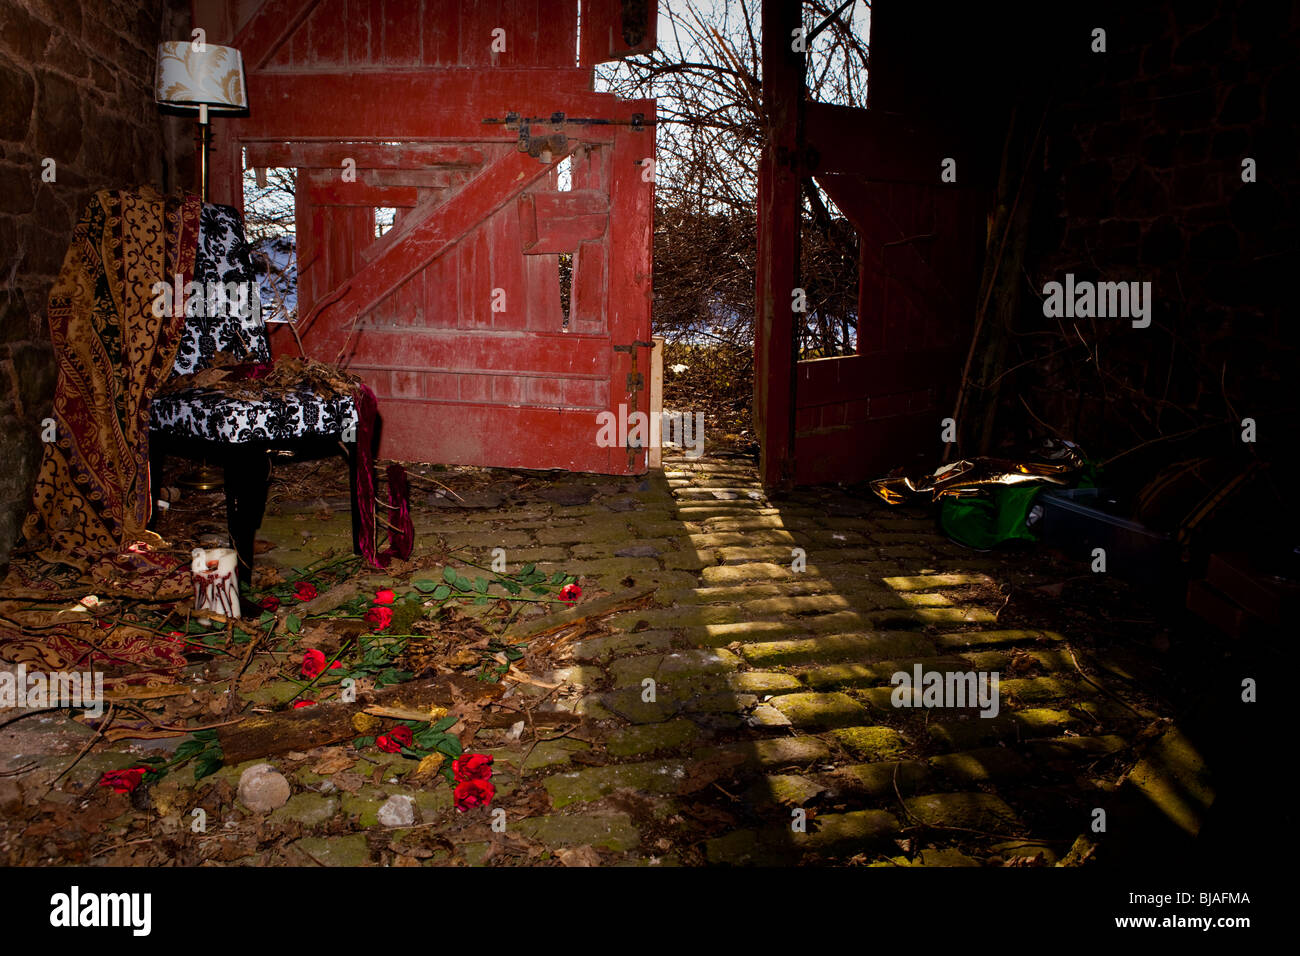 Opulent decay - dead leaves on a chair and an scattered roses - Stock Image